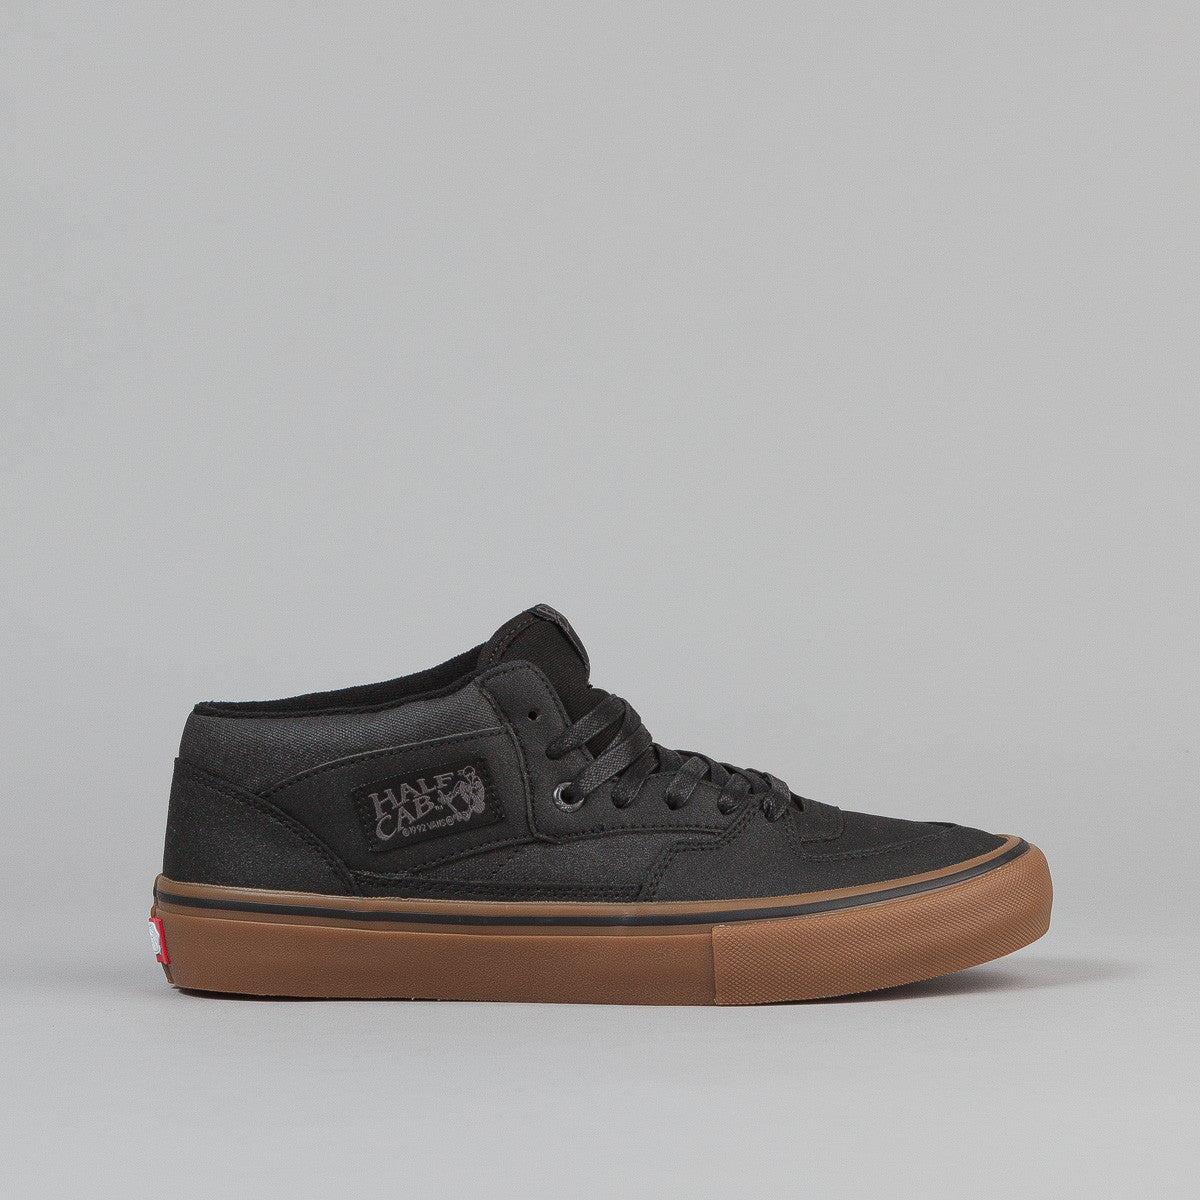 Vans Half Cab Pro Shoes - Black / Gum